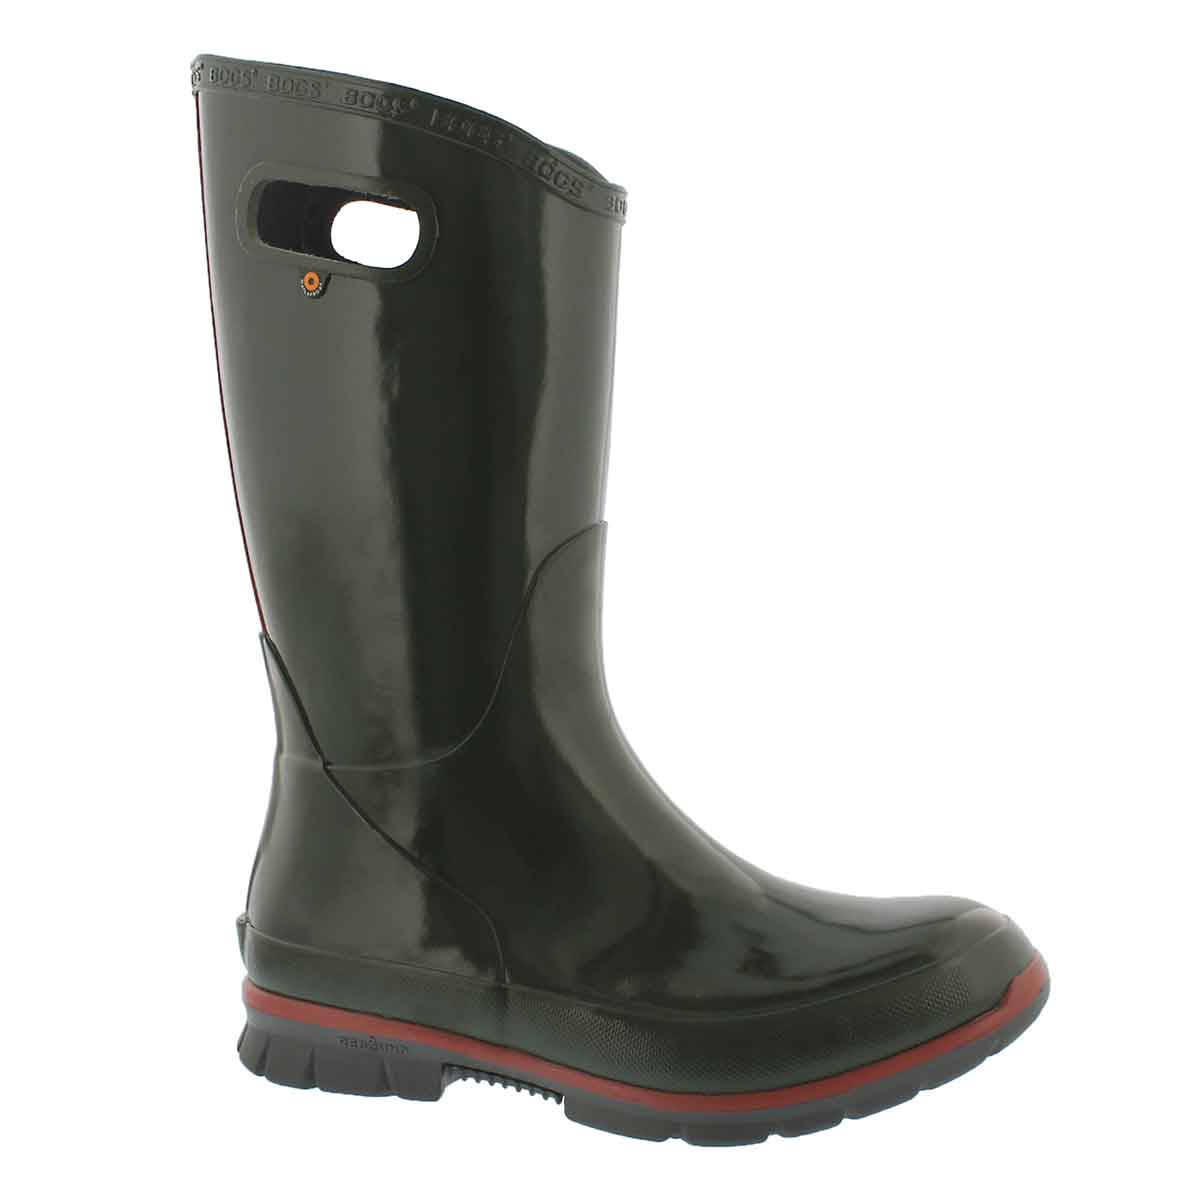 Women's BERKLEY dark green waterproof rain boots